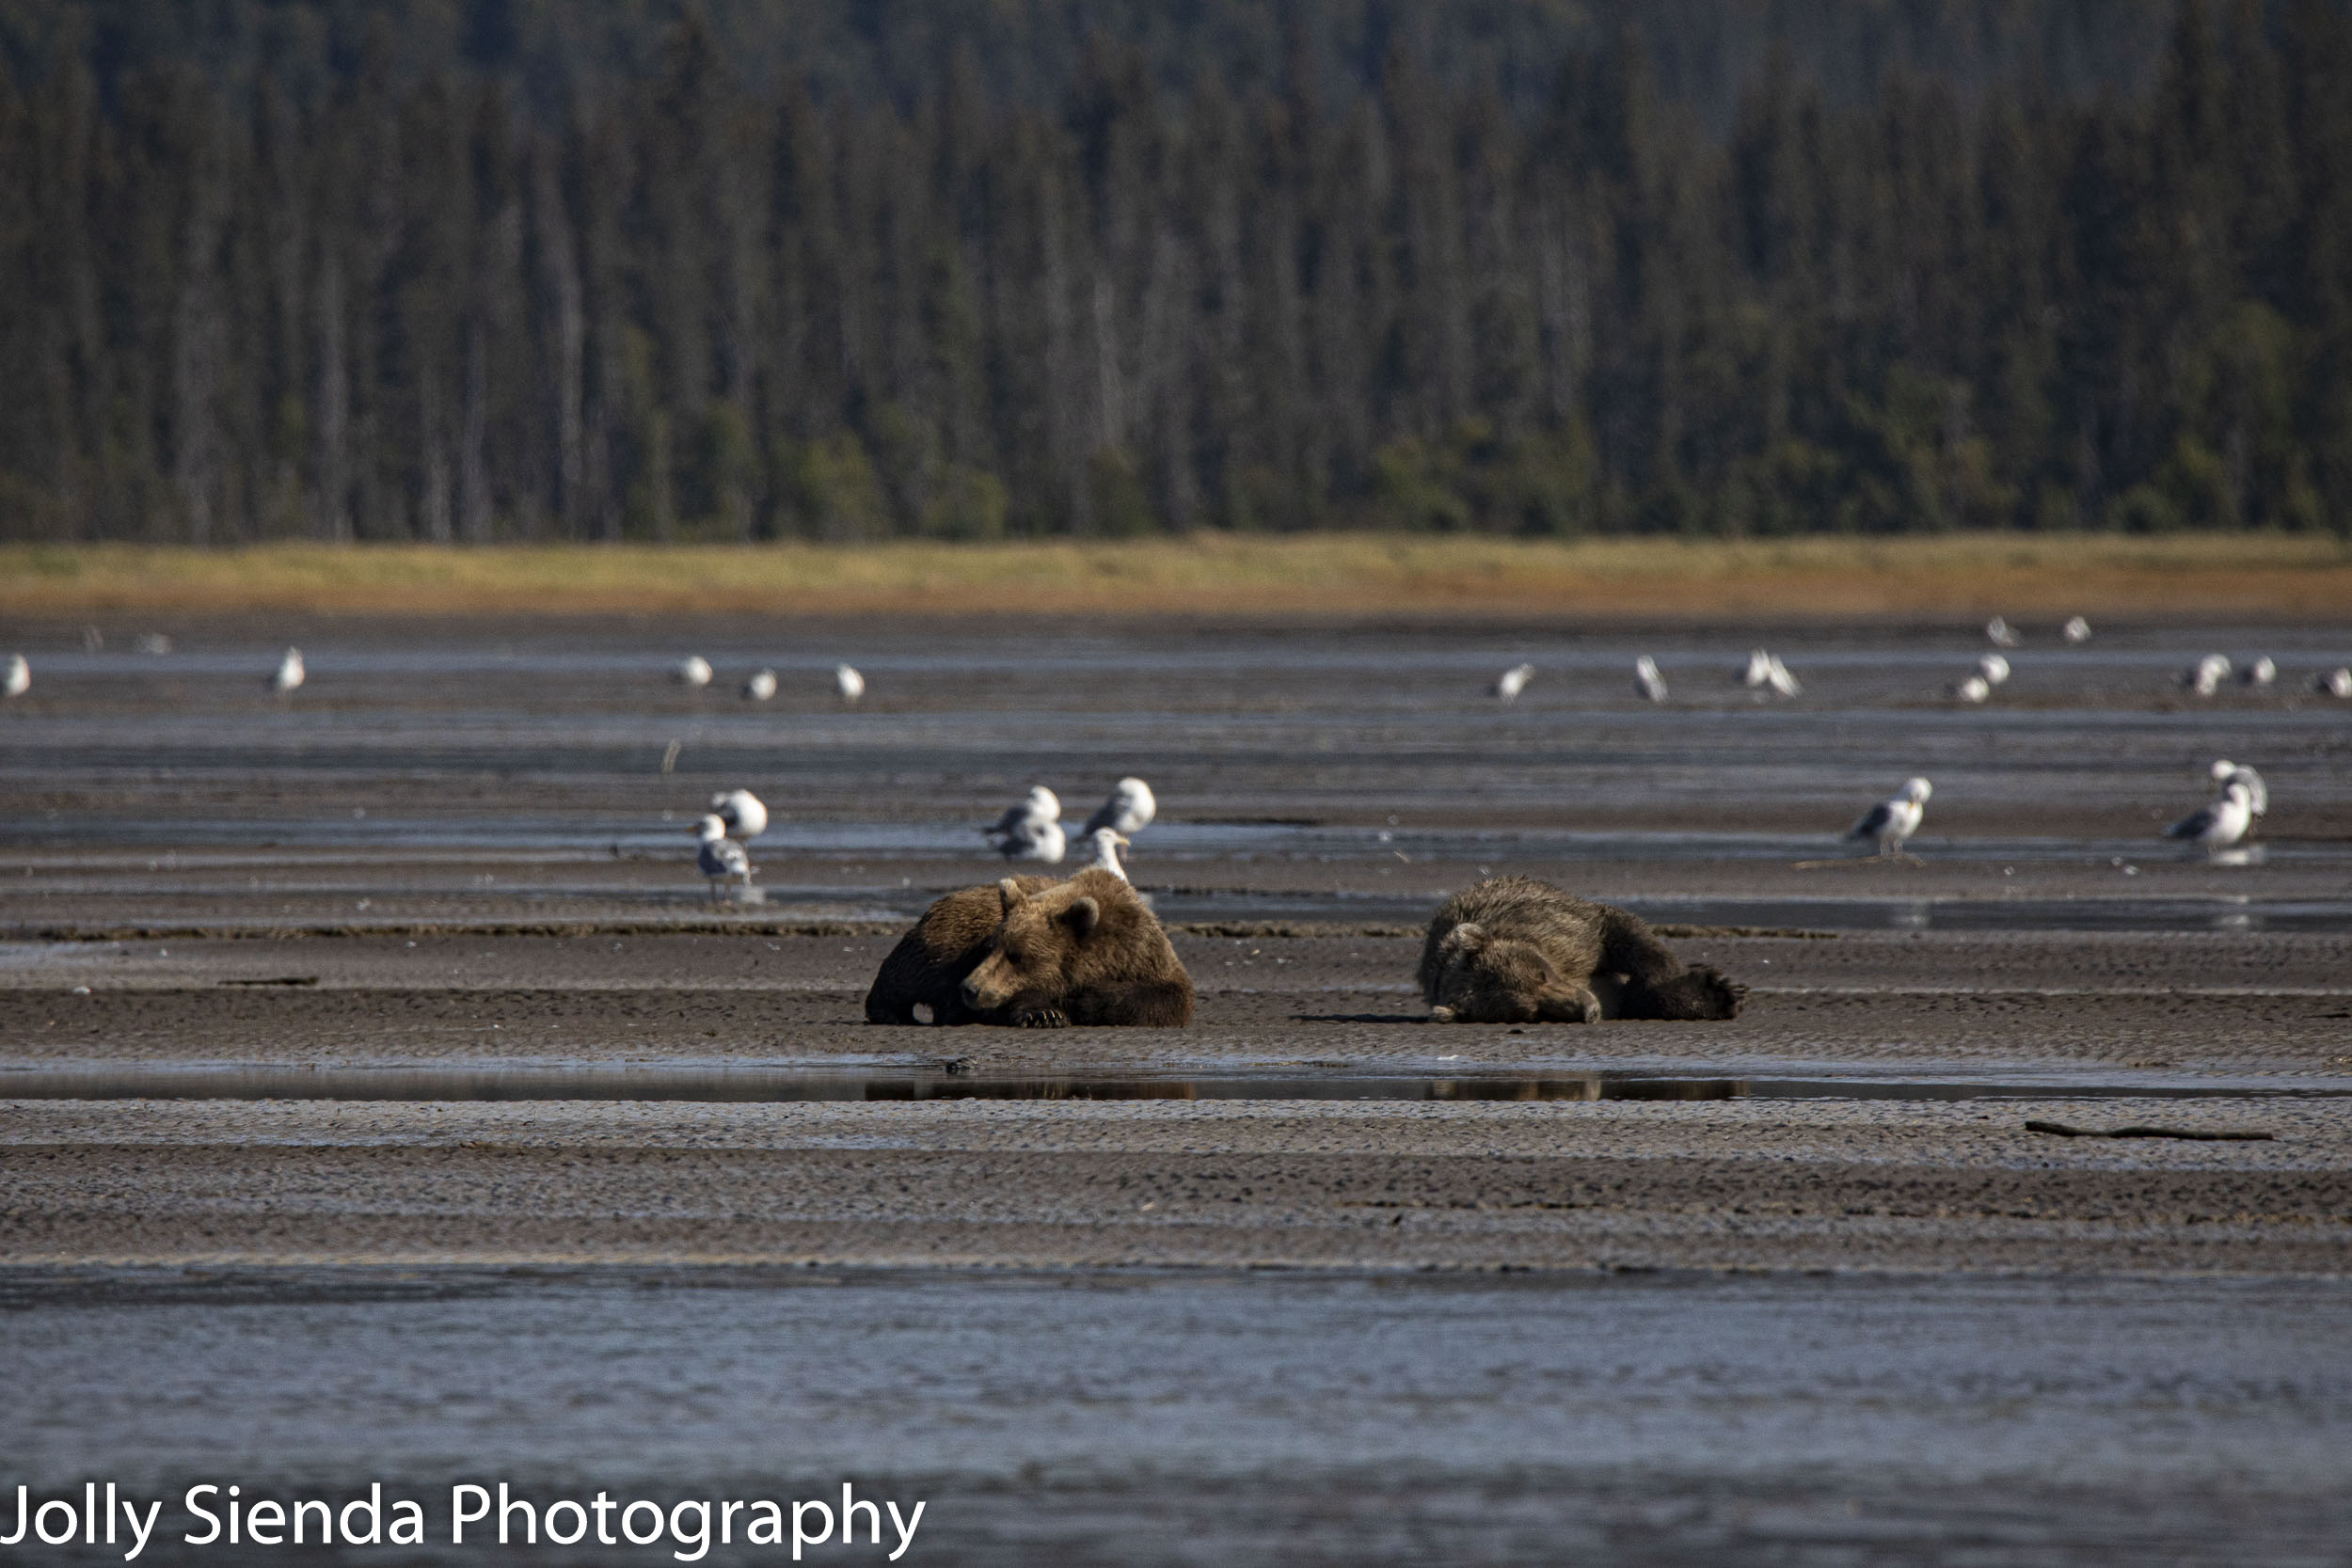 Sleeping bears, Kachemak Bay, Kenai Peninsula, Alaska